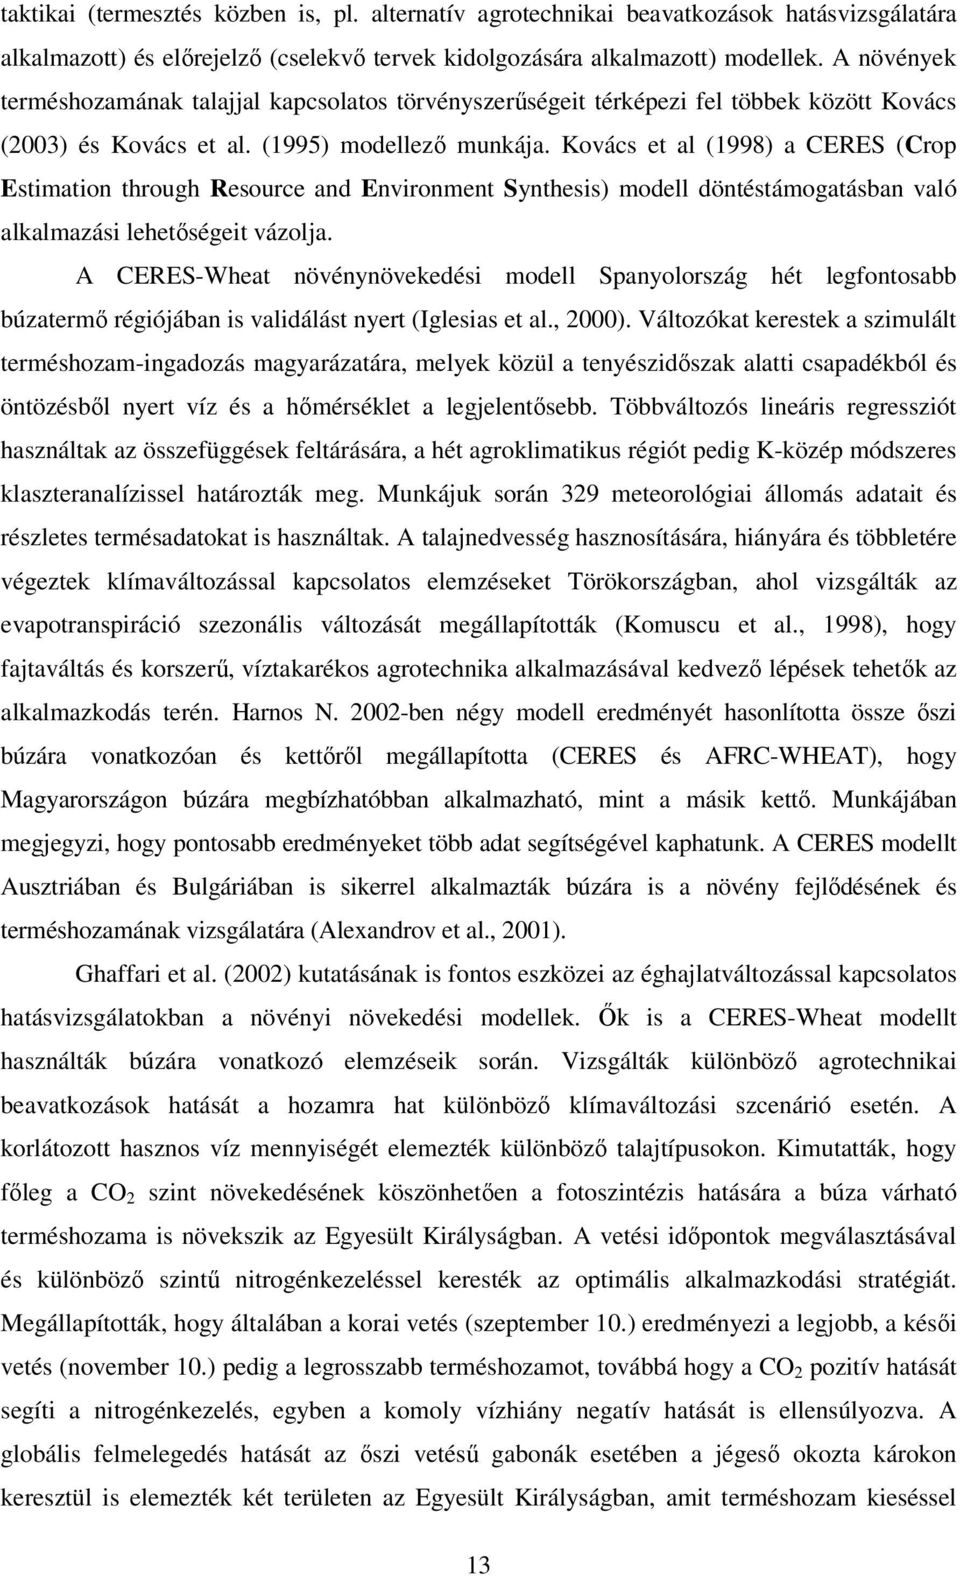 Kovács et al (1998) a CERES (Crop Estimation through Resource and Environment Synthesis) modell döntéstámogatásban való alkalmazási lehetőségeit vázolja.